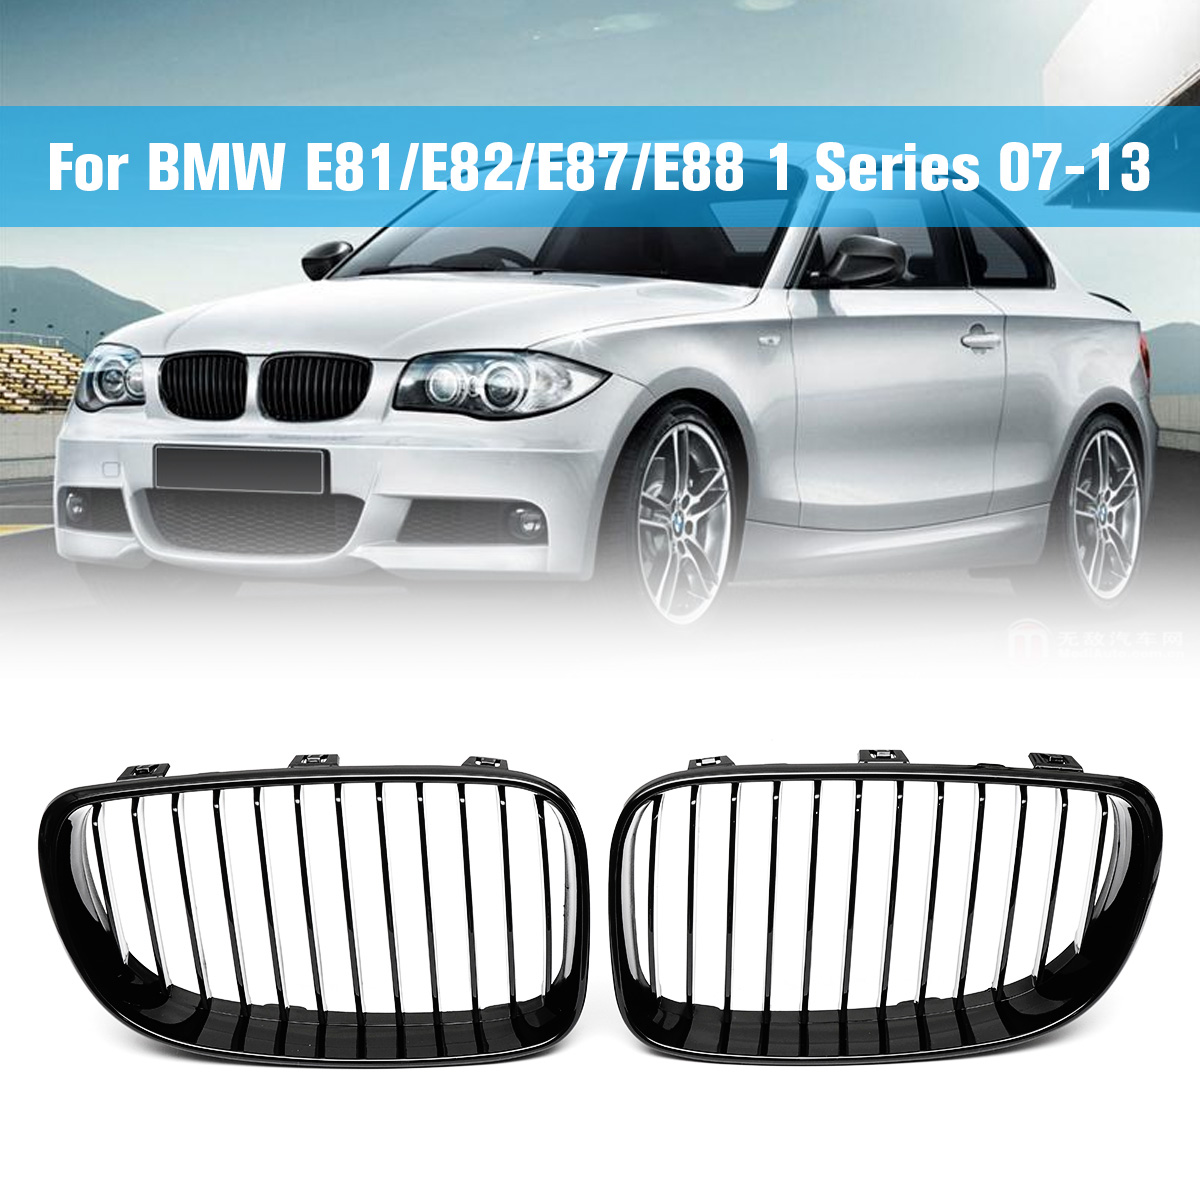 Pair ABS Gloss Matt Black M Color Front Kidney Grille Grill For BMW 1 SERIES E81 E82 E87 E88 2007 2008 2009 2010 2011 2012 2013